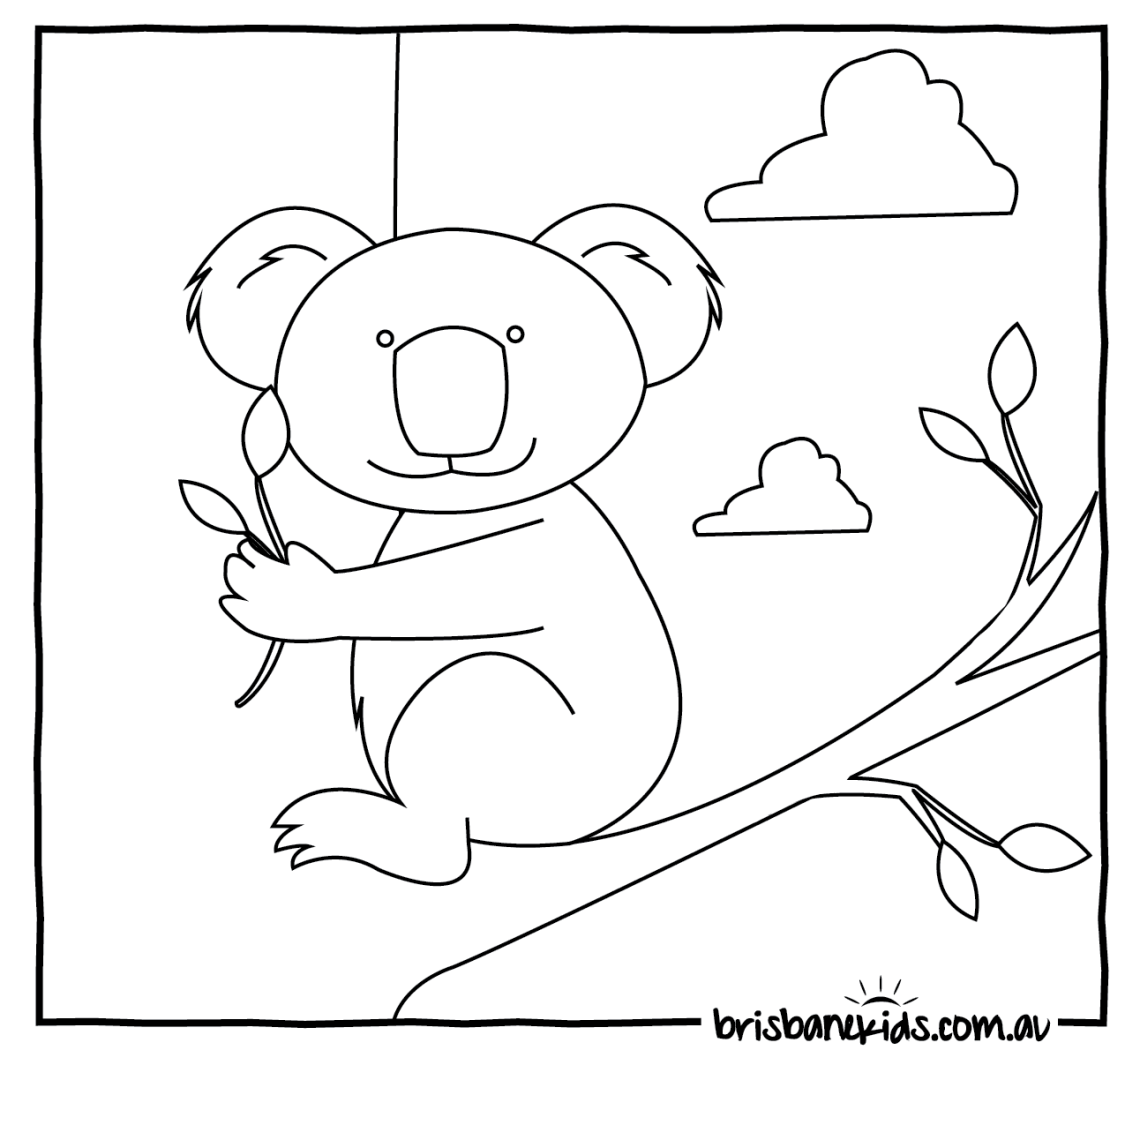 Australian Animals Colouring Pages • Brisbane Kids | free online coloring pages animals